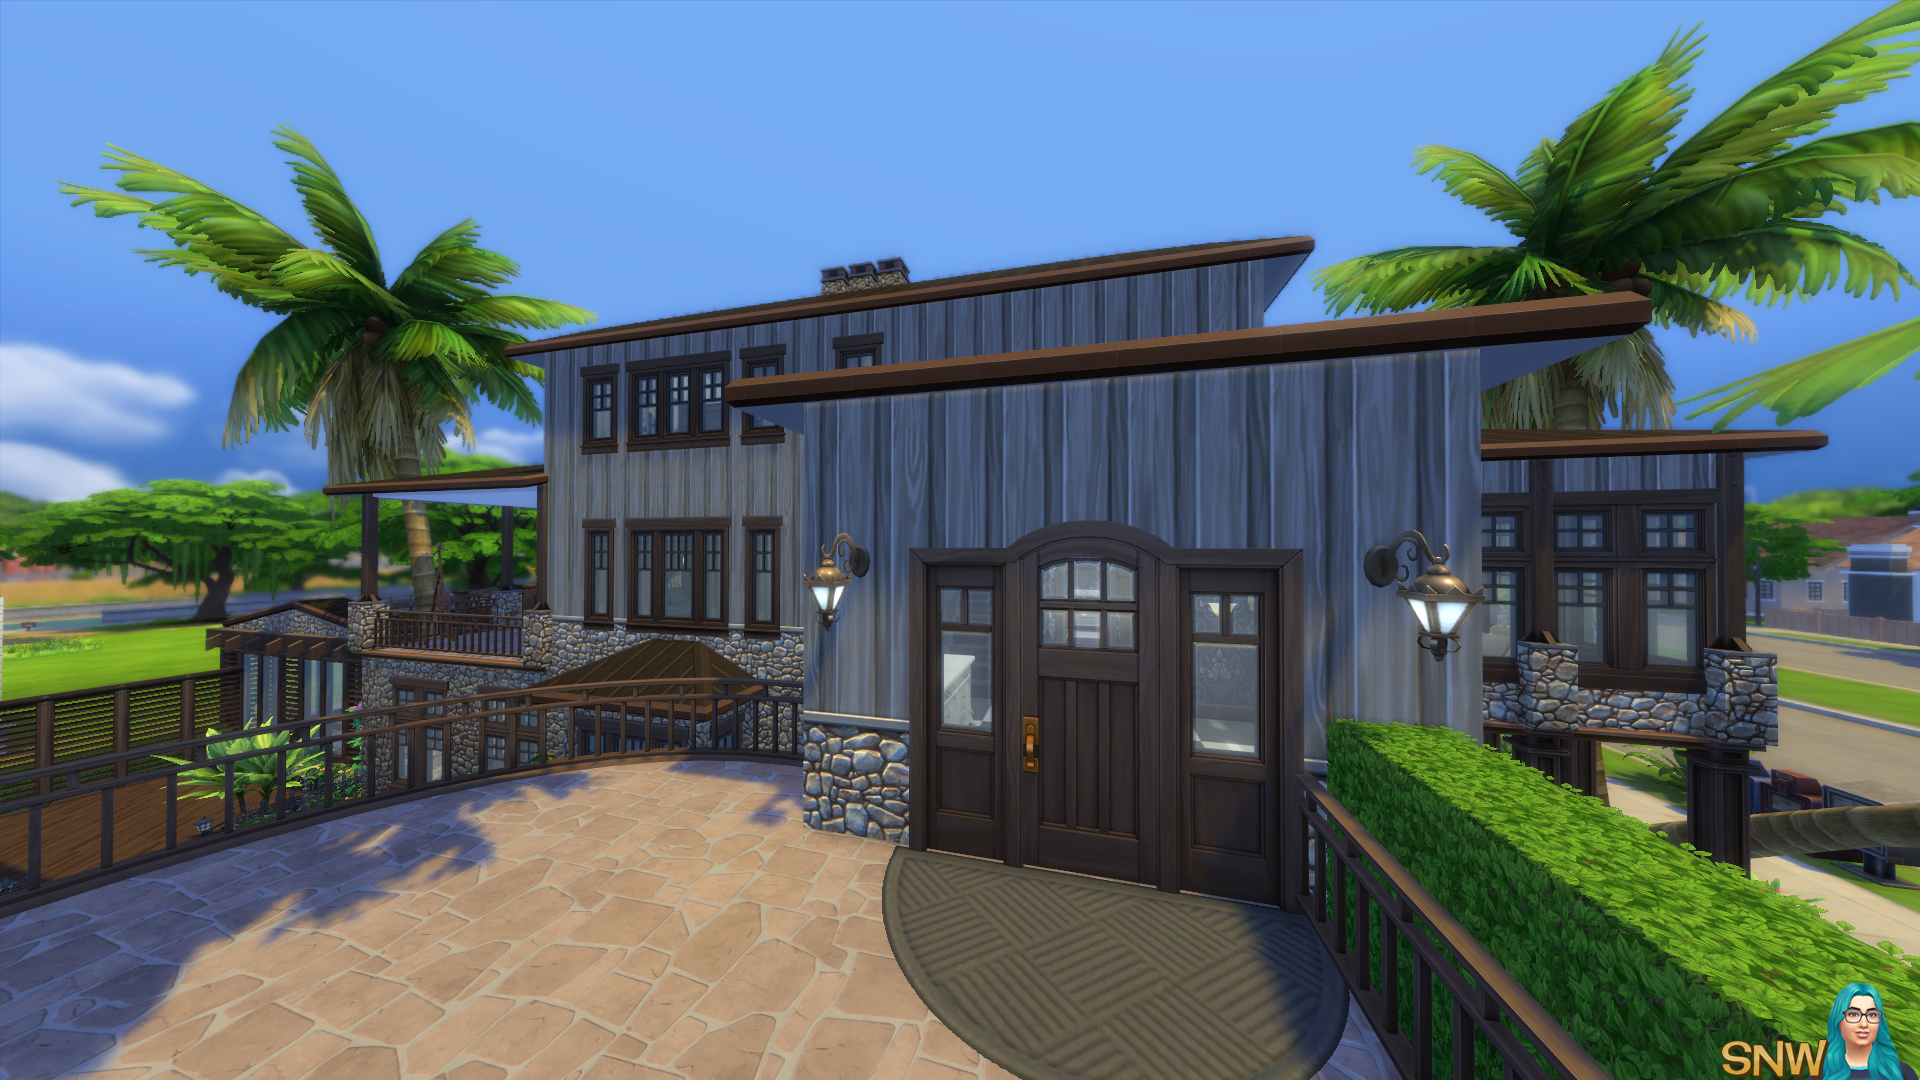 Fun & Quirky house in The Sims 4